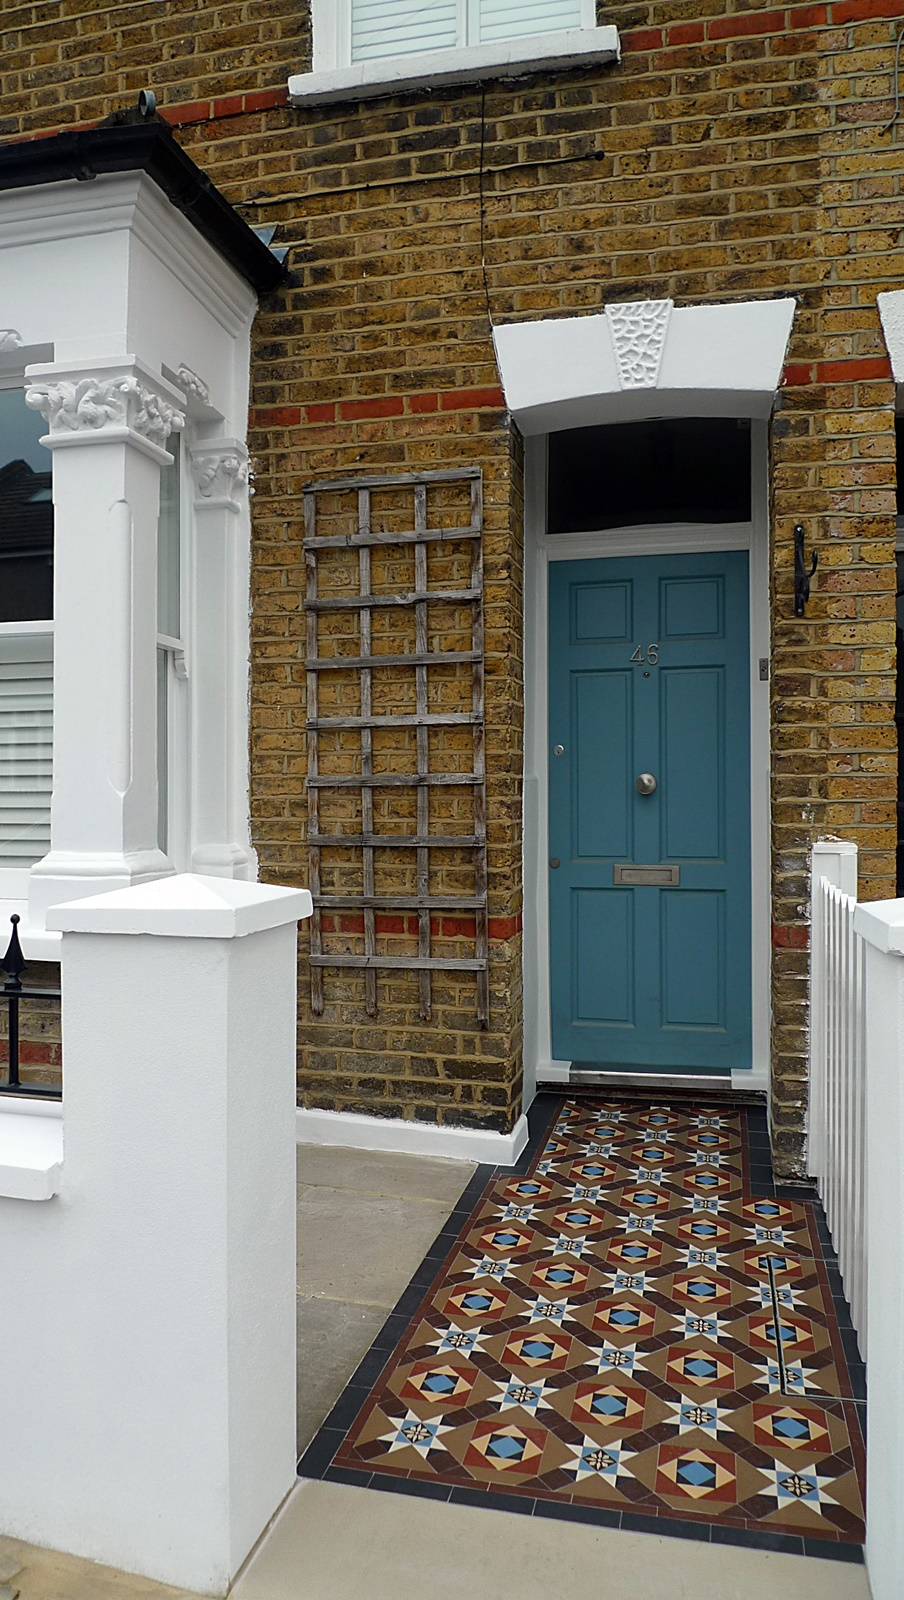 render block white wall yorkstone entrance stone colourful victorian mosaic tile garden path wandsworth earlsfield balham clapham battersea london